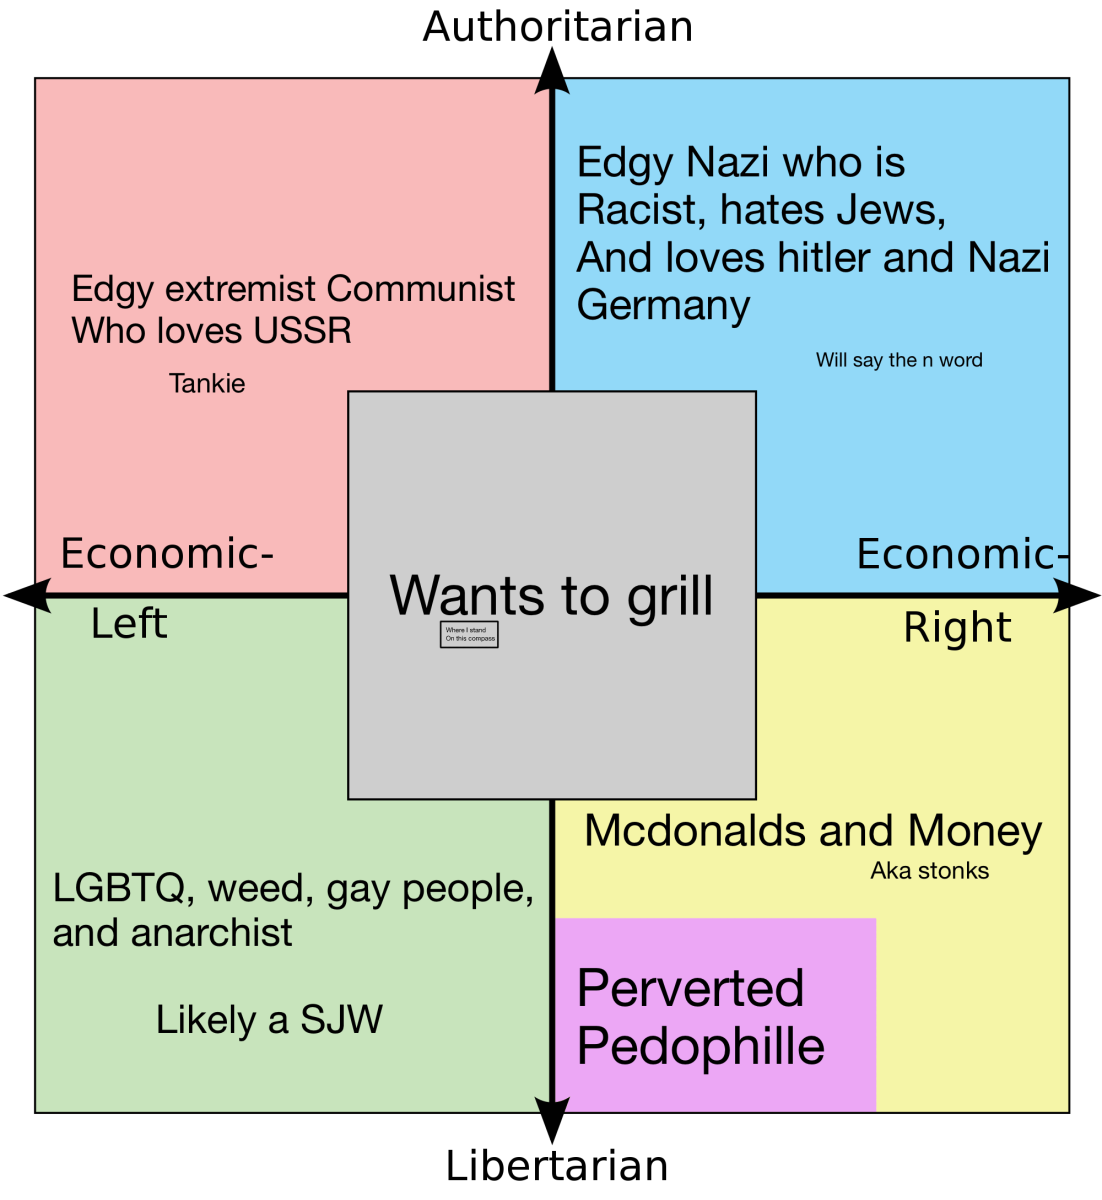 Stereotypes on the Political Compass